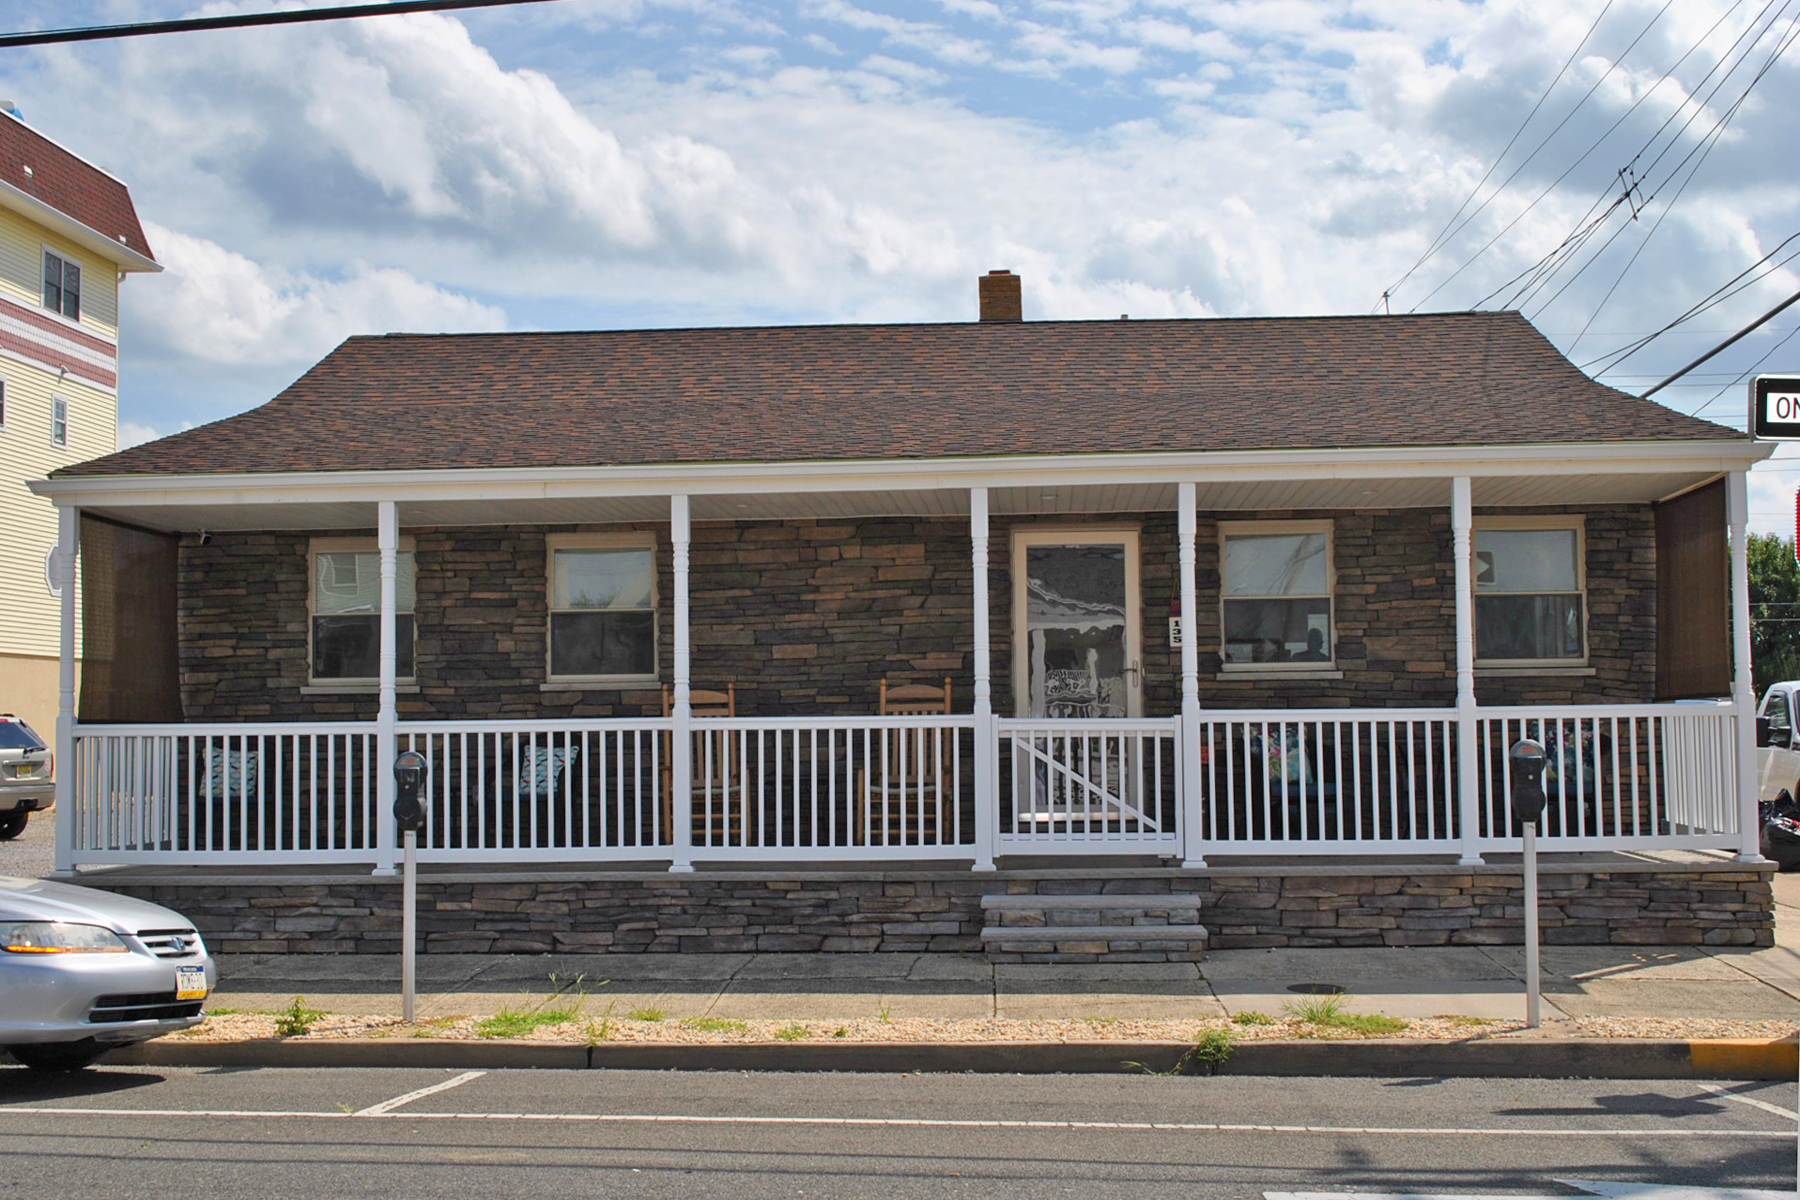 Property for Sale at Completely Renovated Ranch Style Home 135 Dupont Avenue, Seaside Heights, New Jersey 08751 United States